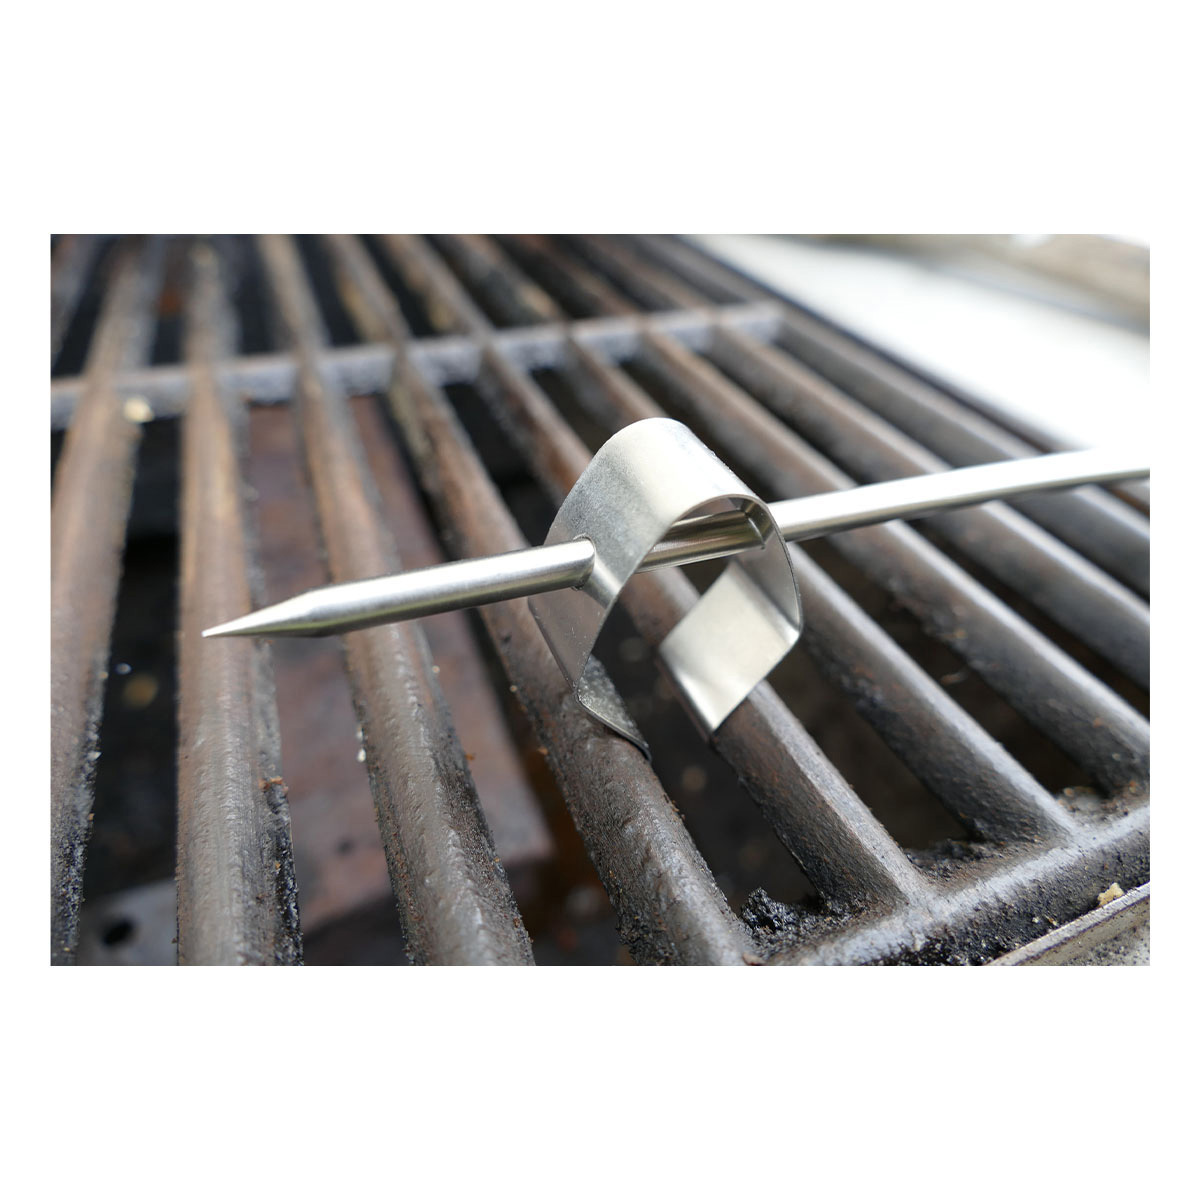 30-3525-60-clips-für-grill-bratenthermometer-anwendung-grill1-1200x1200px.jpg